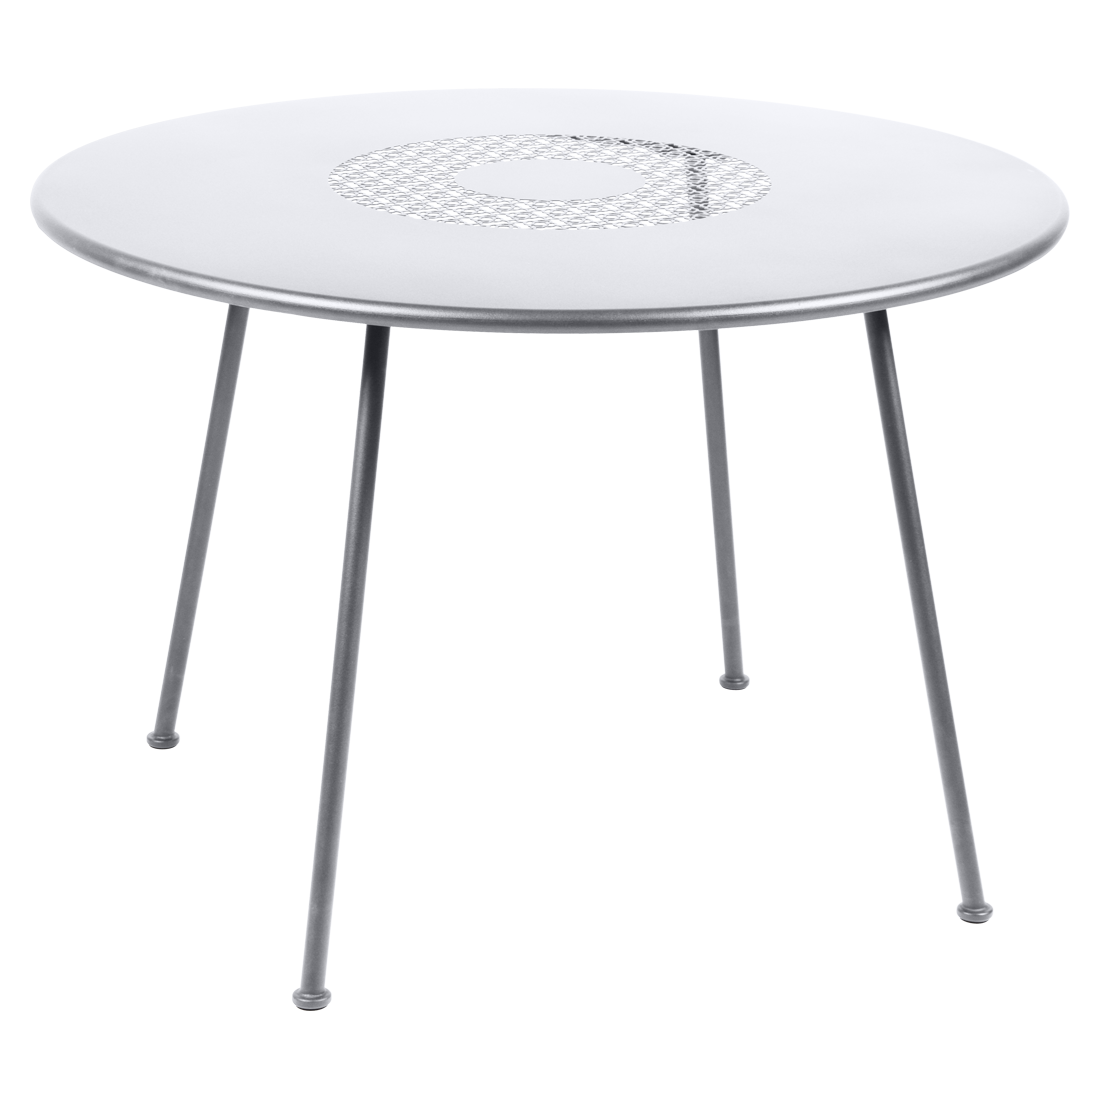 Table Ø 110 cm blanc coton